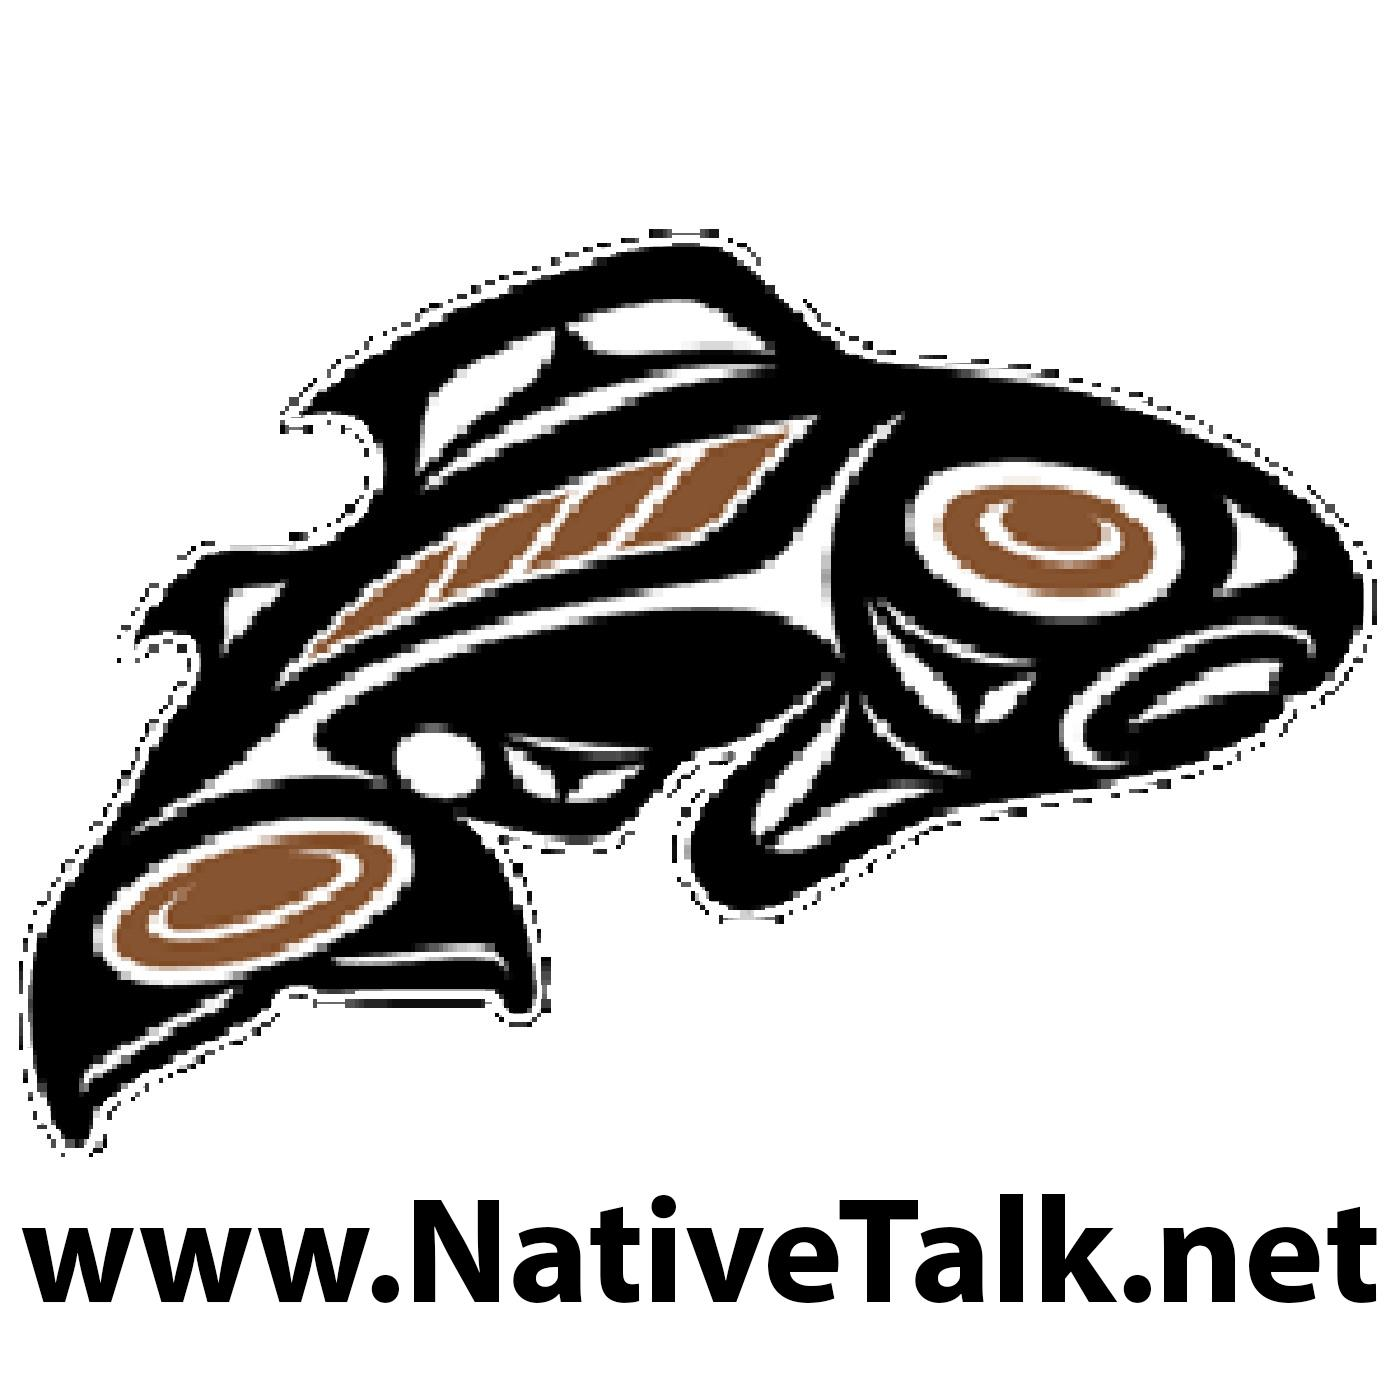 The Native Talk Radio Podcast